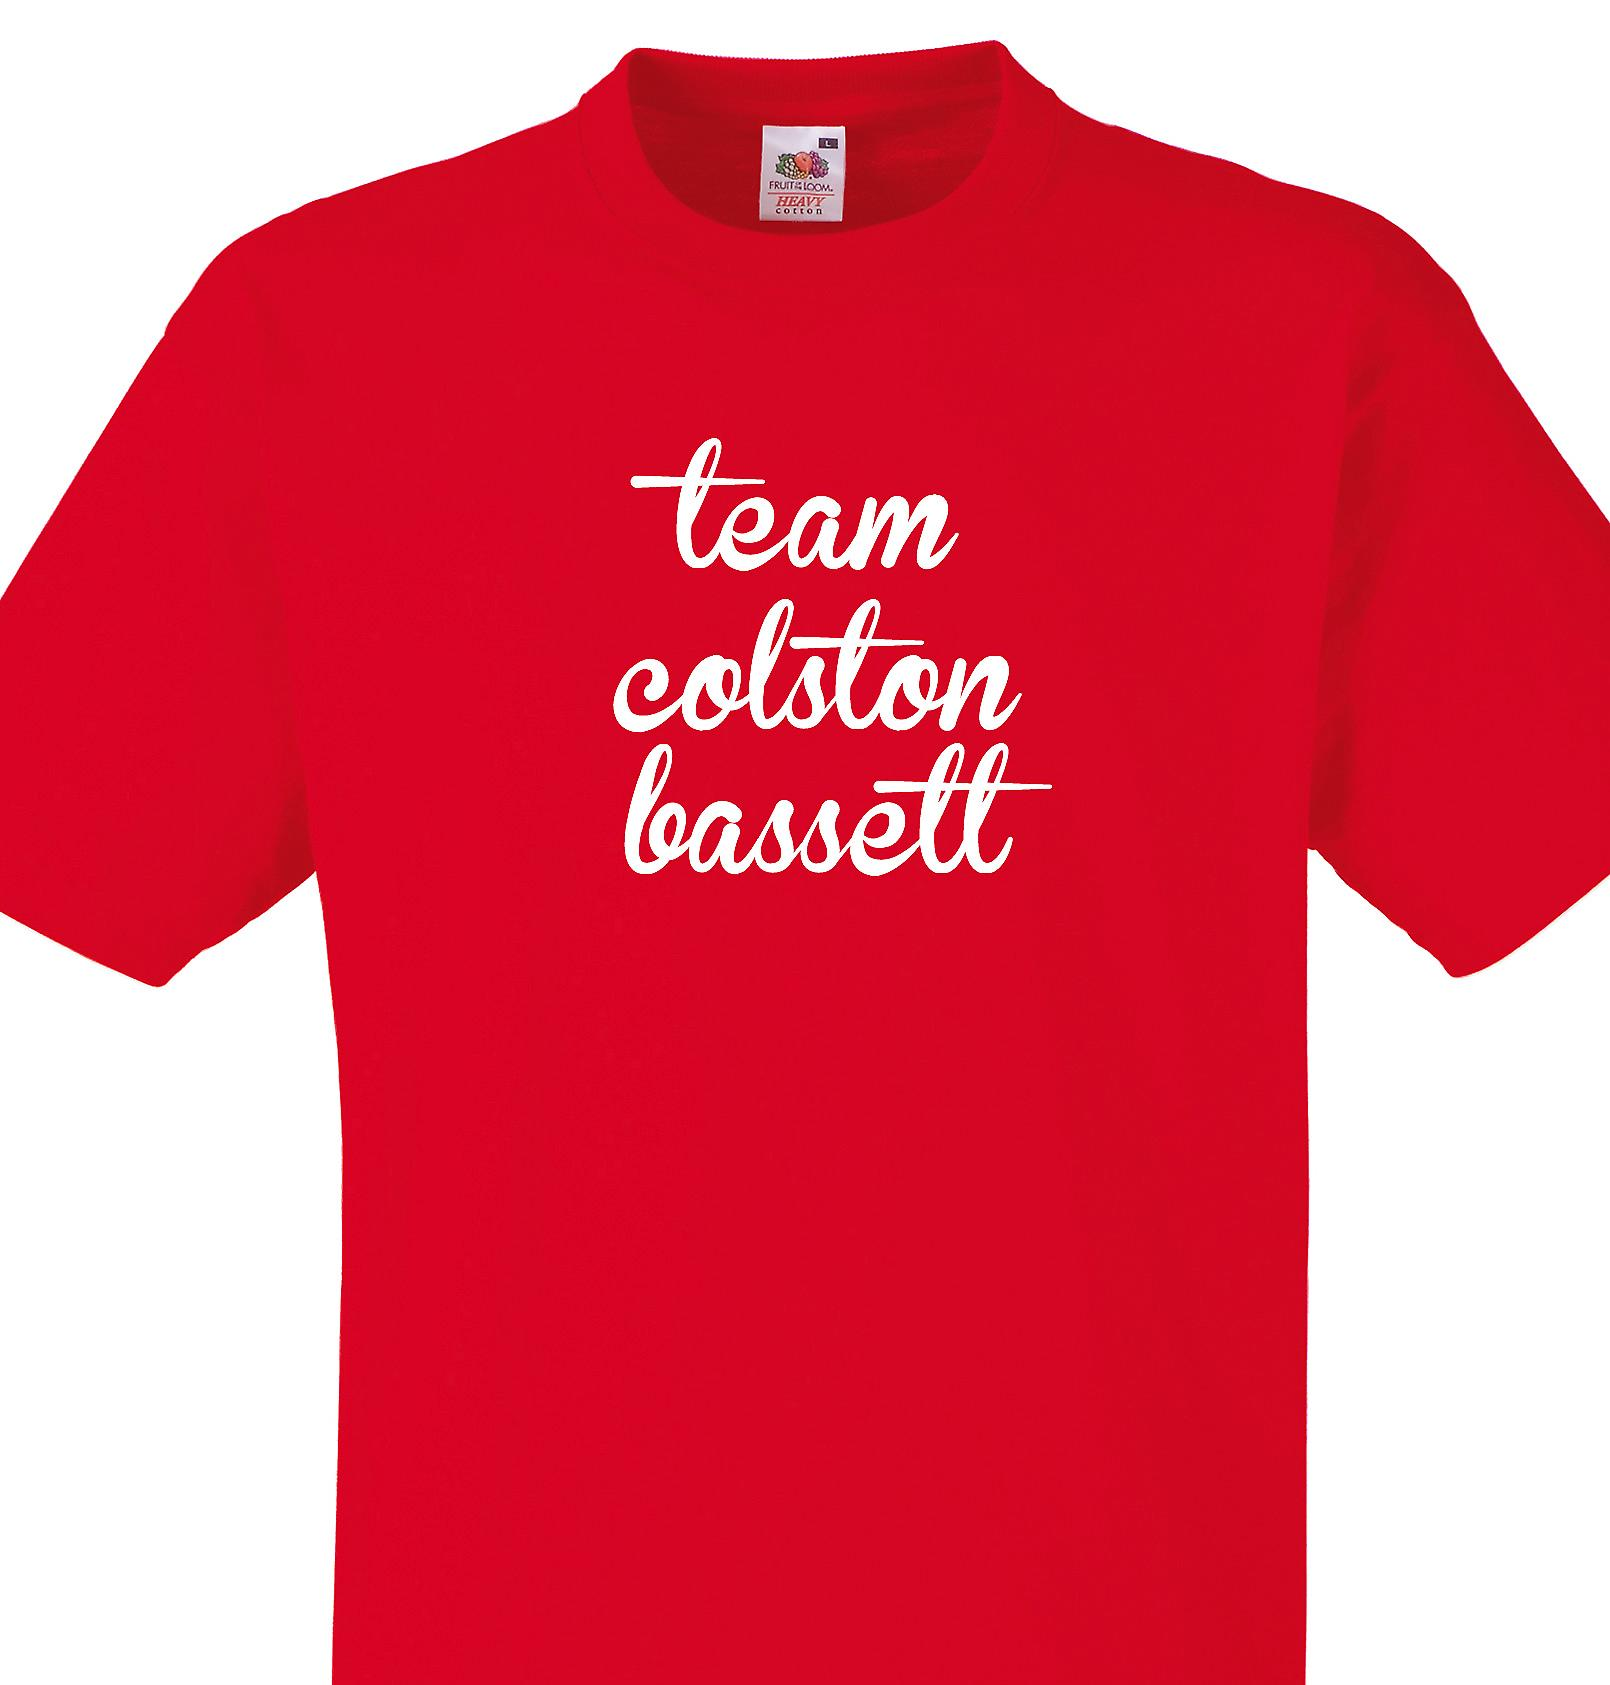 Team Colston bassett Red T shirt